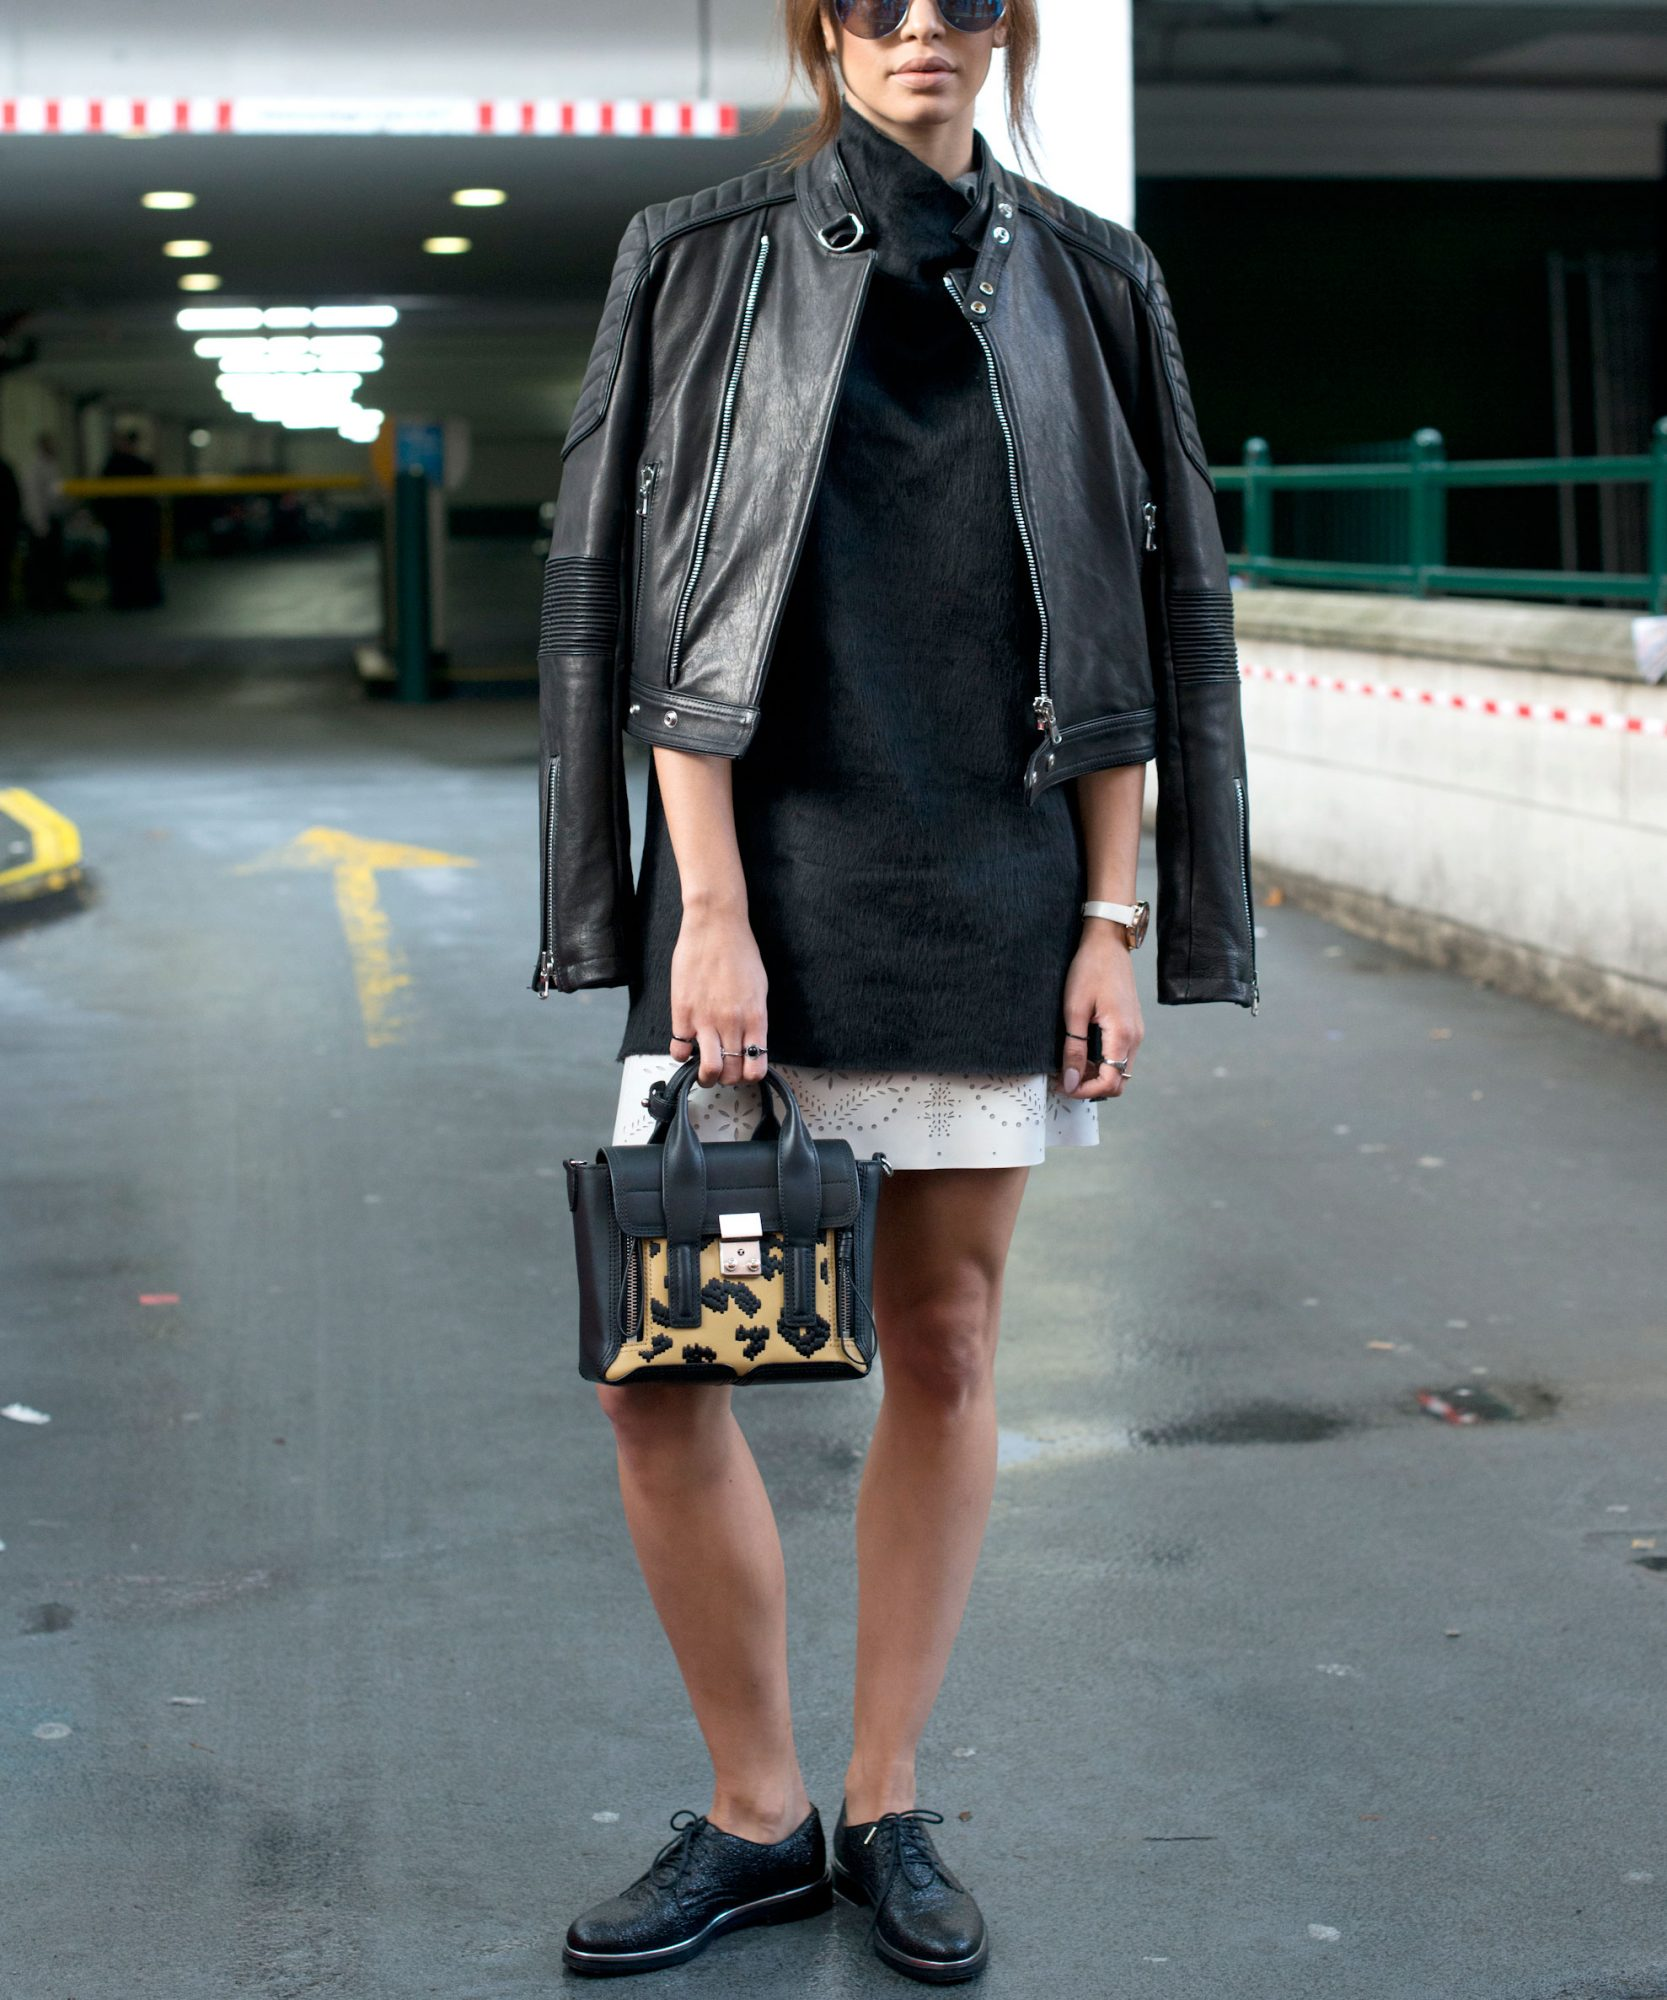 <p>Go for a Downtown Chic Look</p>